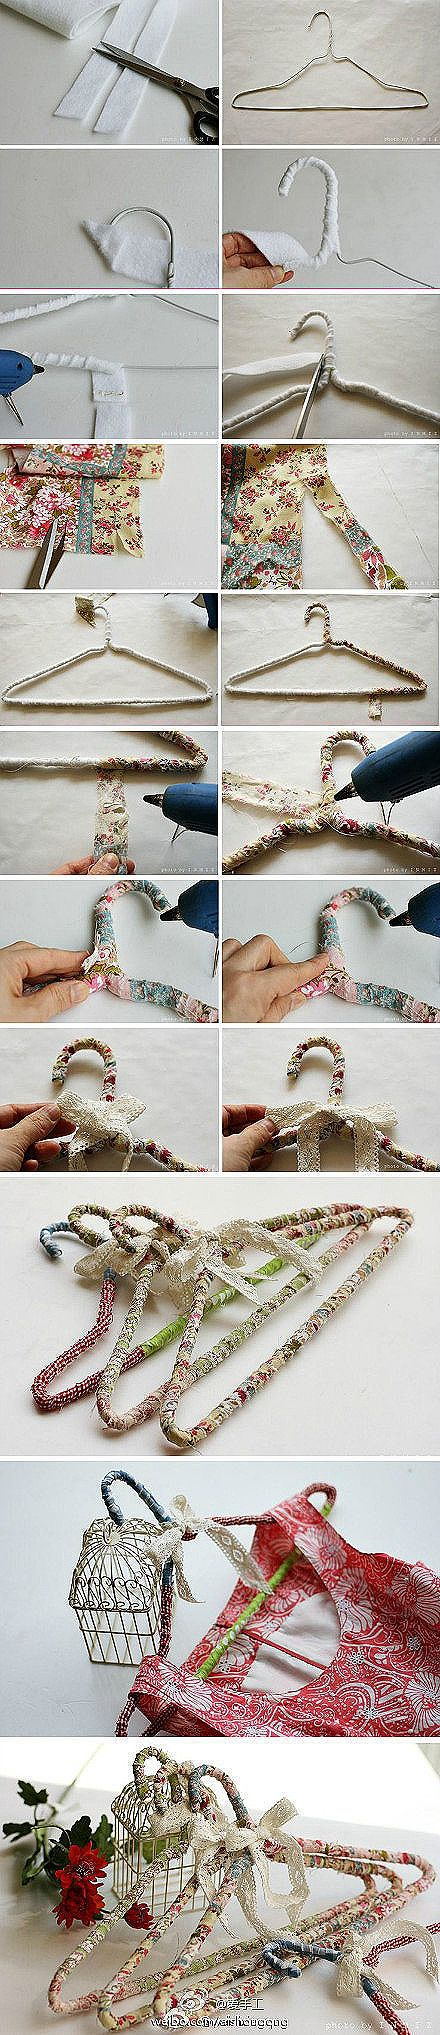 DIY: Shabby Hangers: Simple handmade fabric wrapped hanger with fabric strips-no link.